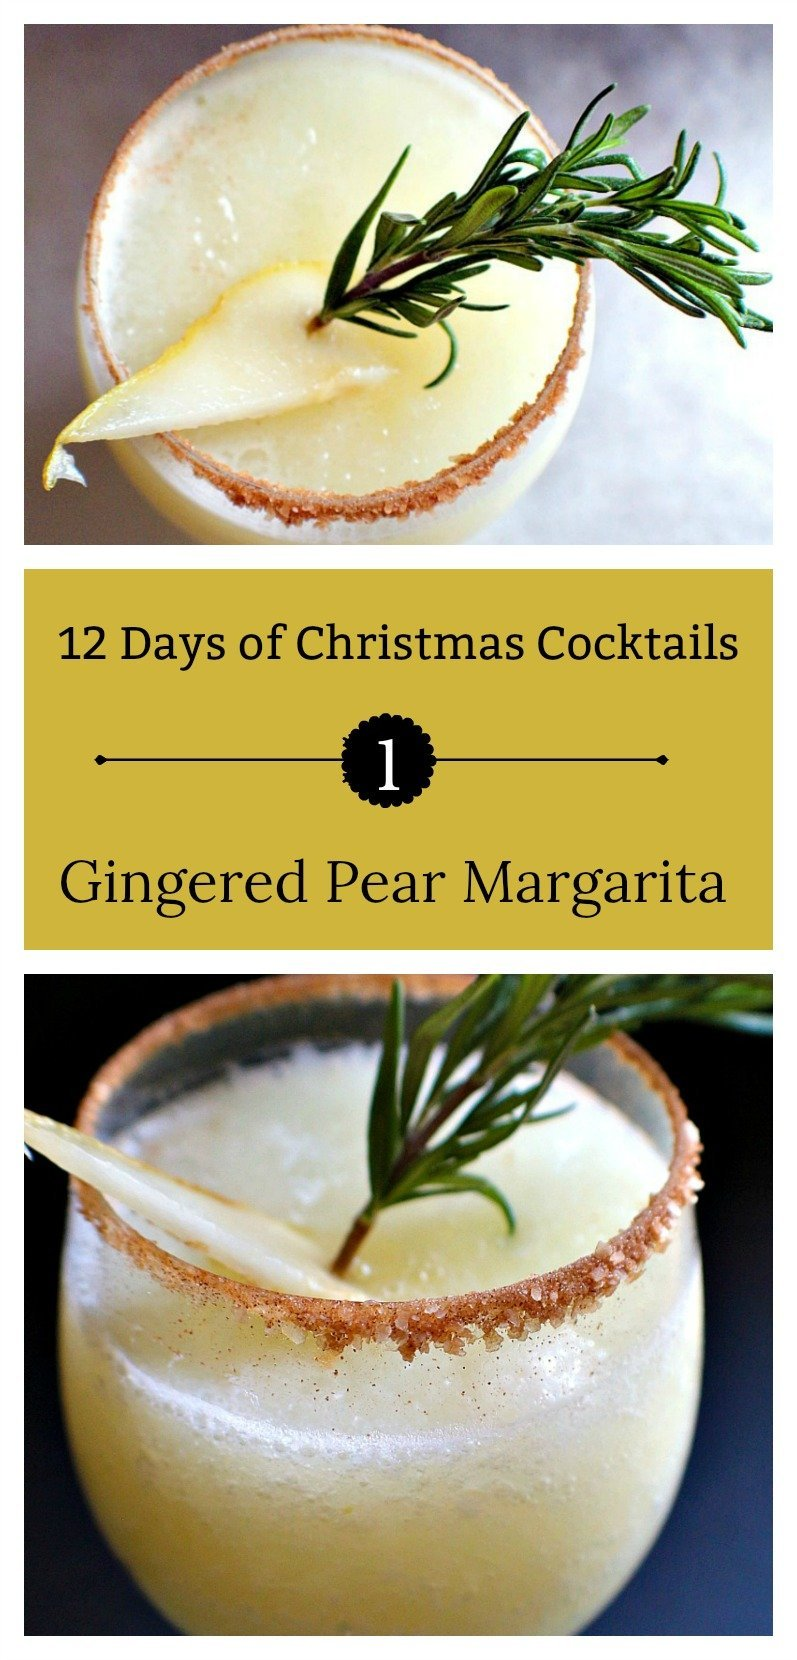 One of the Twelve Days of Christmas Cocktails, this Gingered Pear Margarita is made with Marble Distilling Gingercello, tequila, and pears.